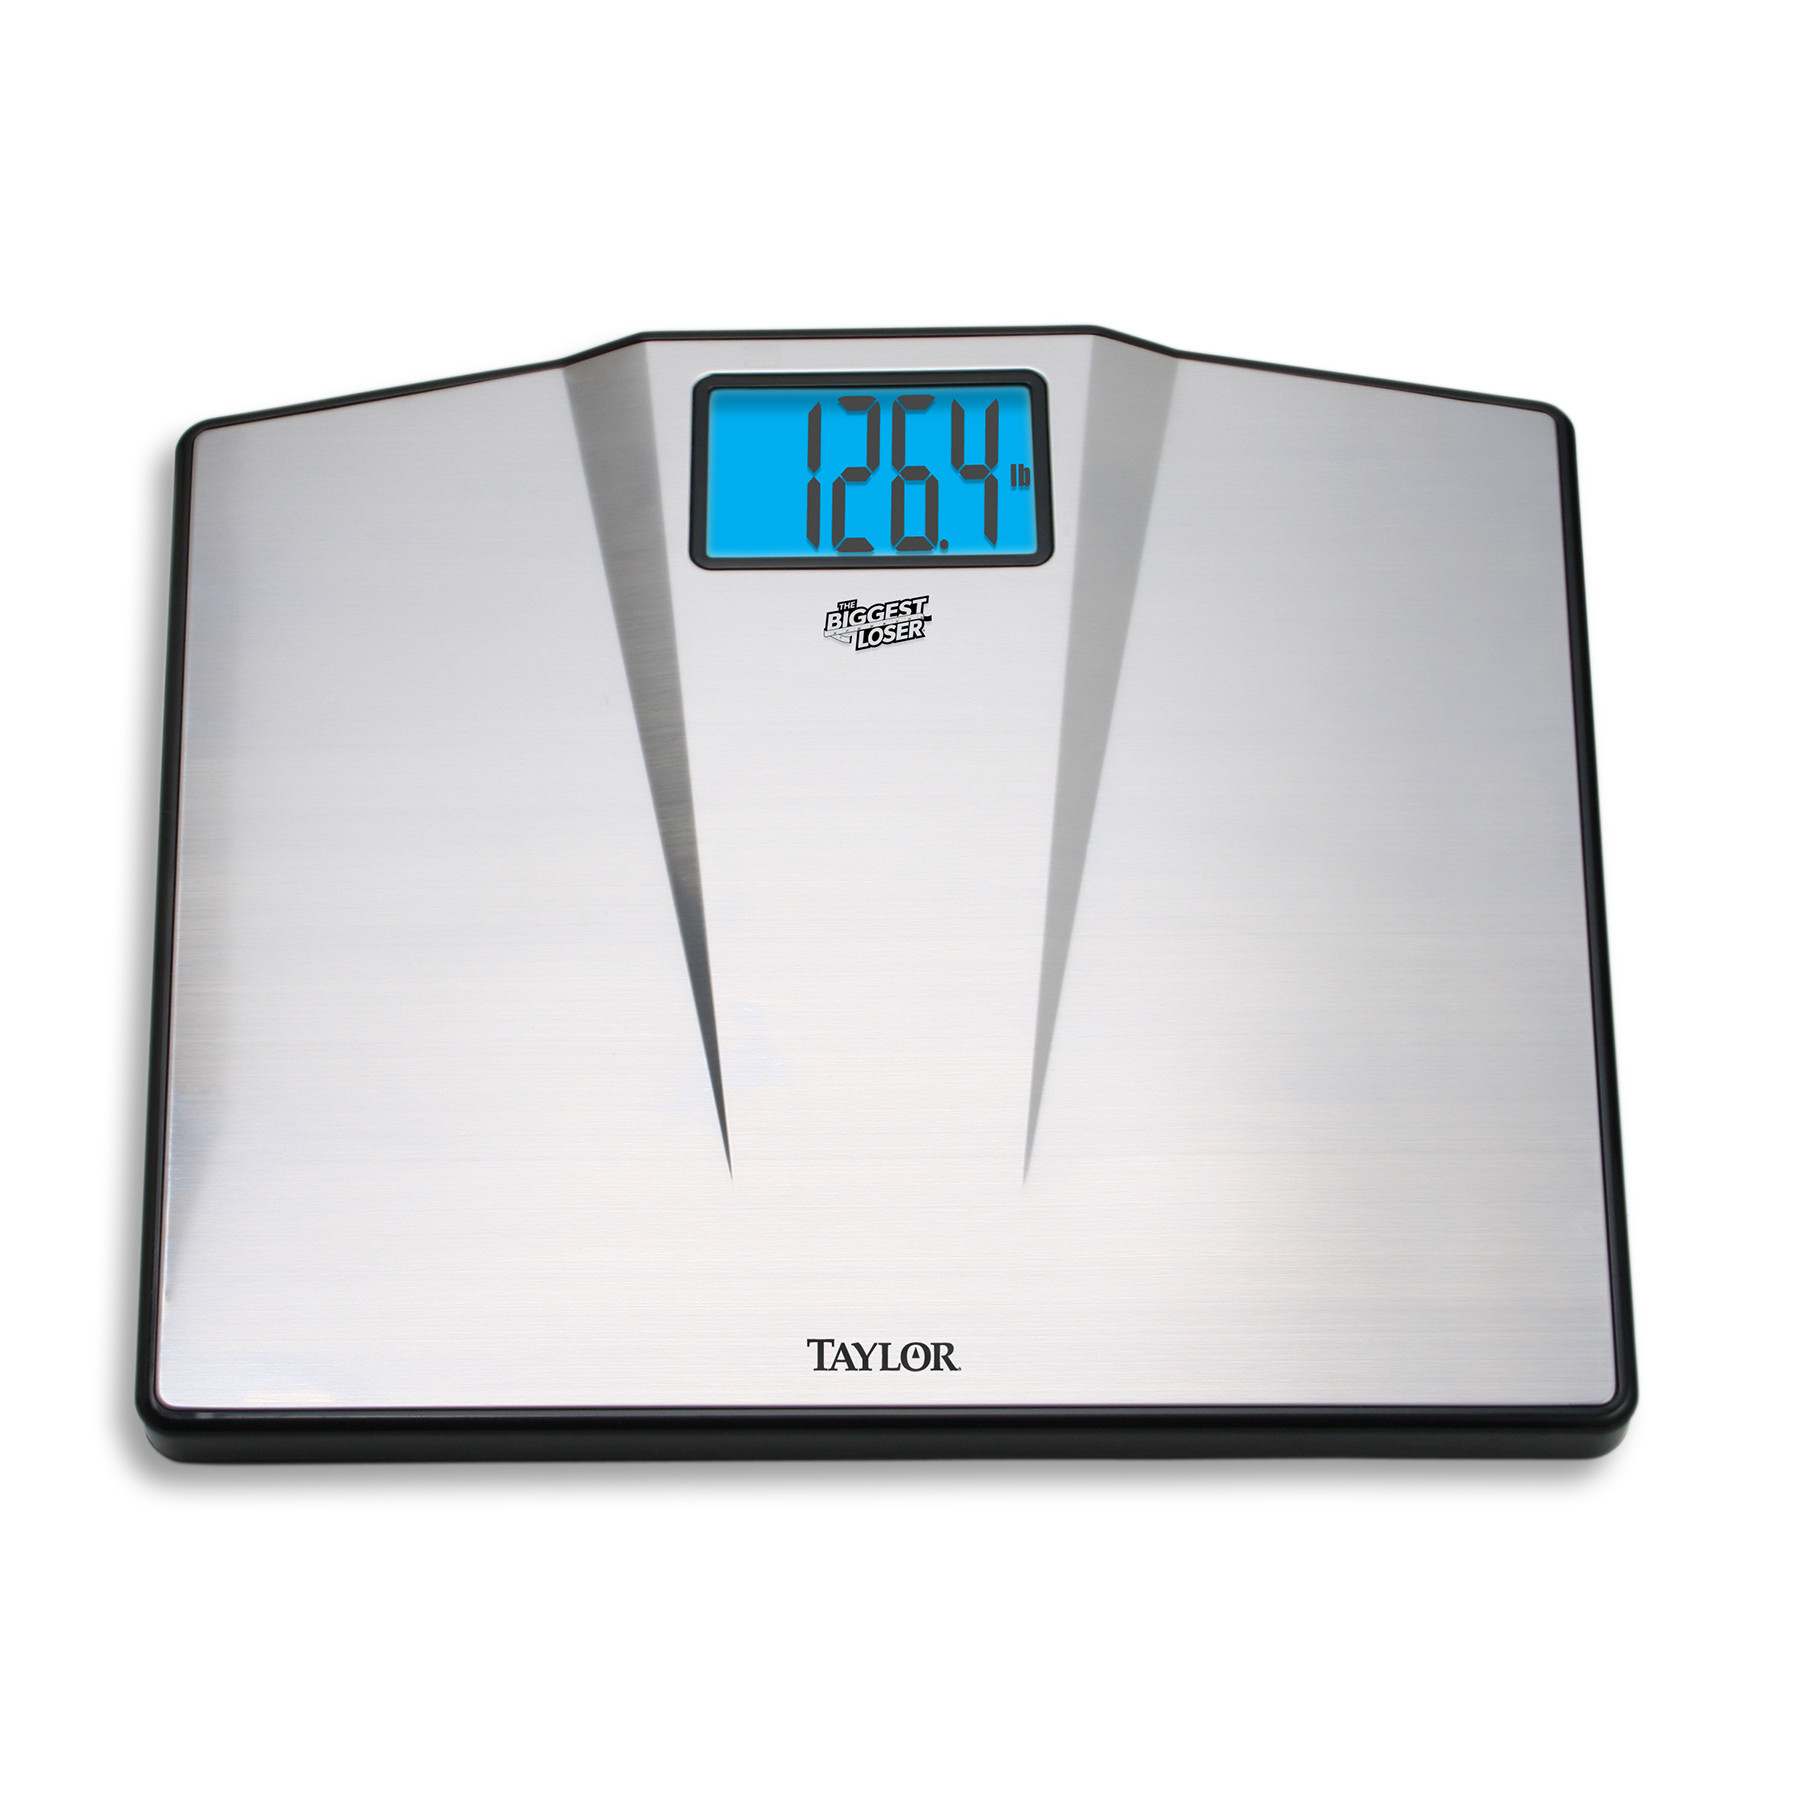 Bed bath and beyond bathroom scales - Eatsmart Digital Scale Eatsmart Precision Digital Bathroom Scale Eatsmart Precision Digital Bathroom Scale Calibration